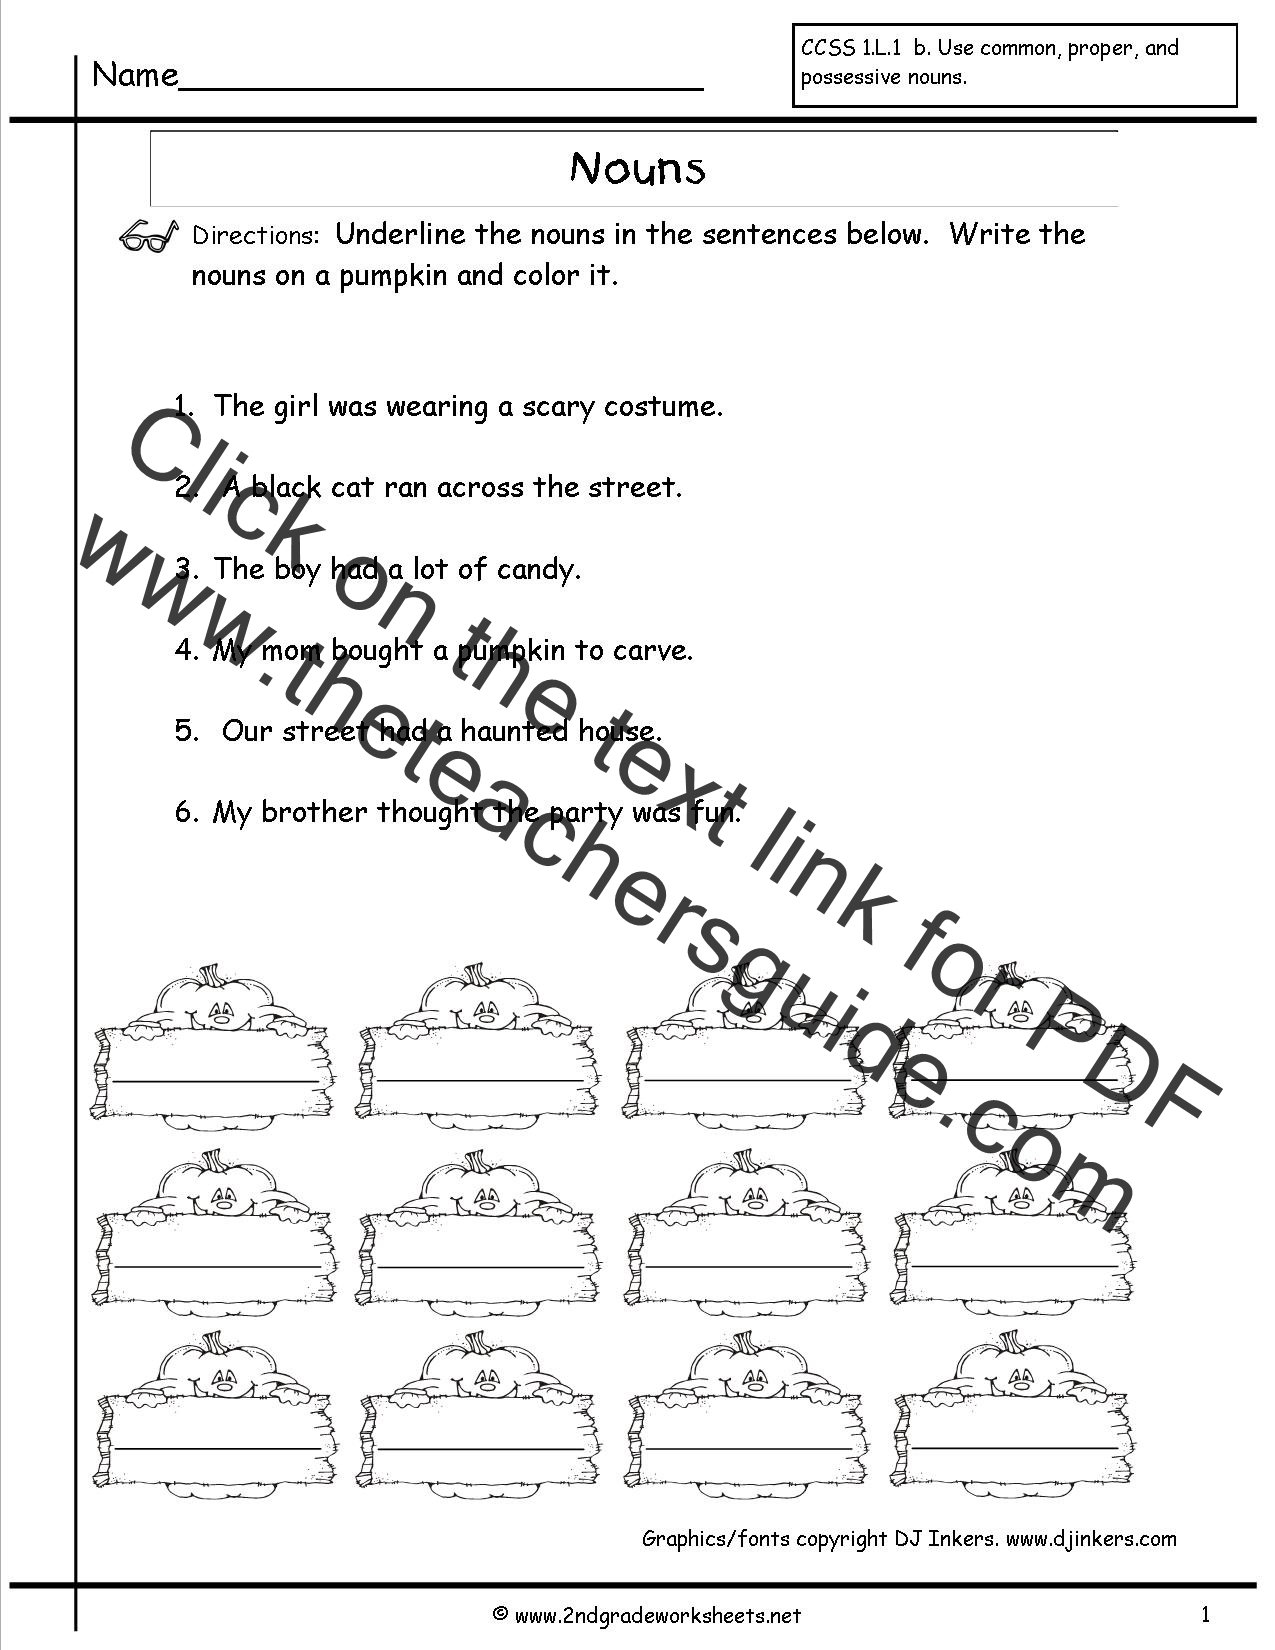 Nouns Worksheets and Printouts – Singular Possessive Nouns Worksheets